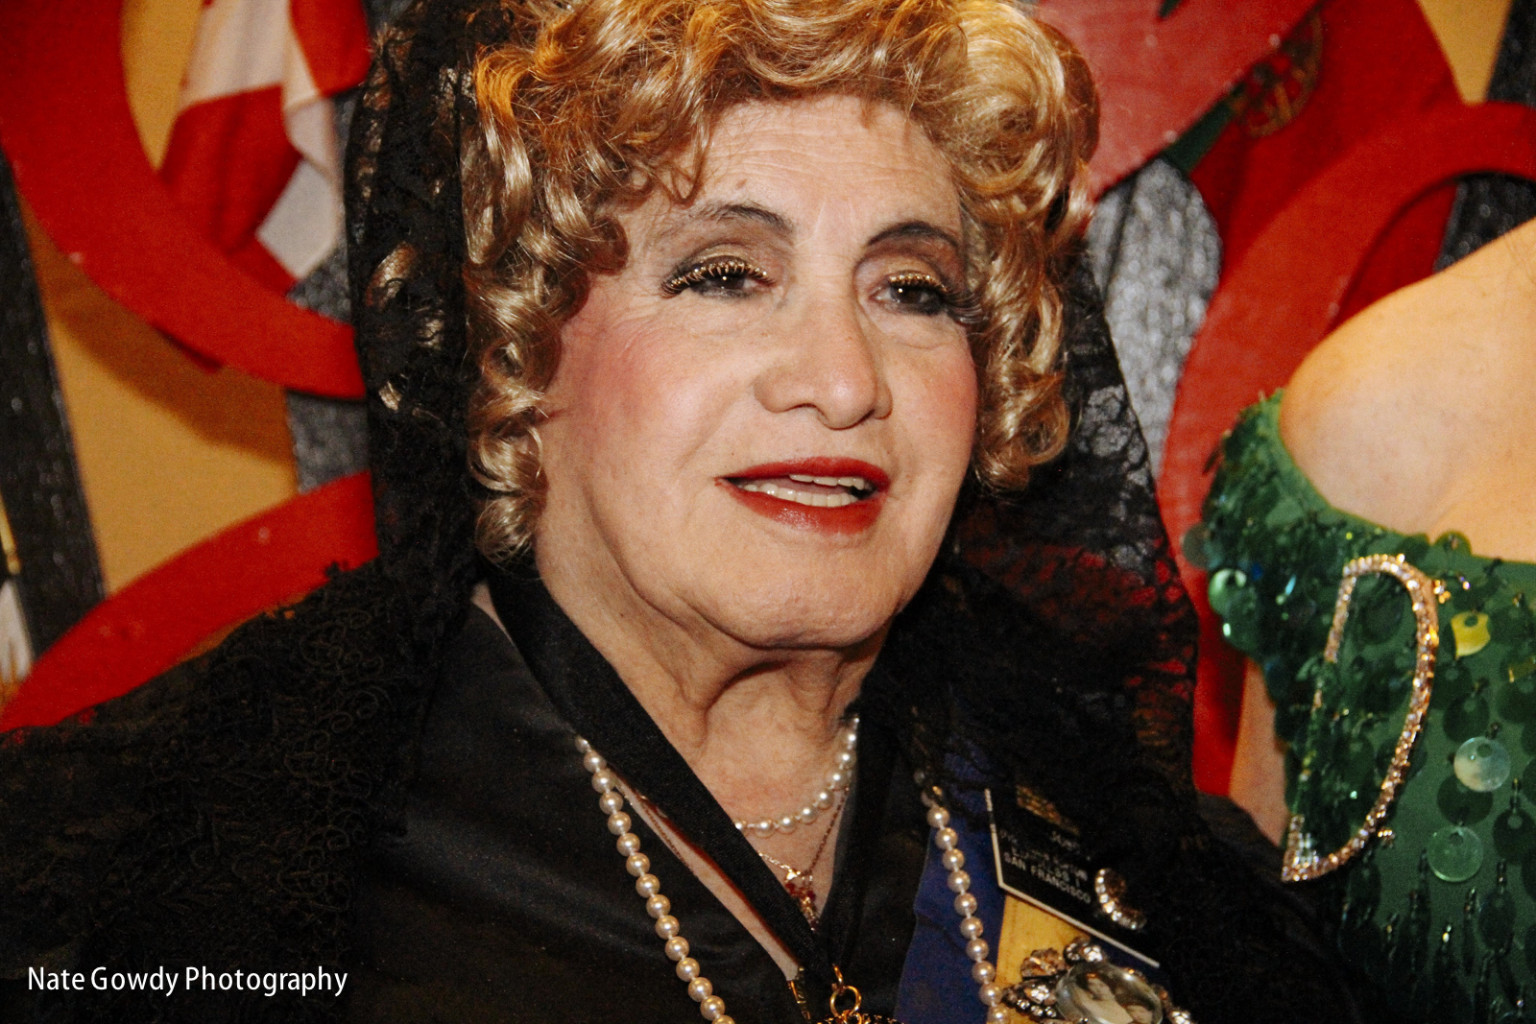 Jose Sarria Gay Rights Activist Leaves Behind Best